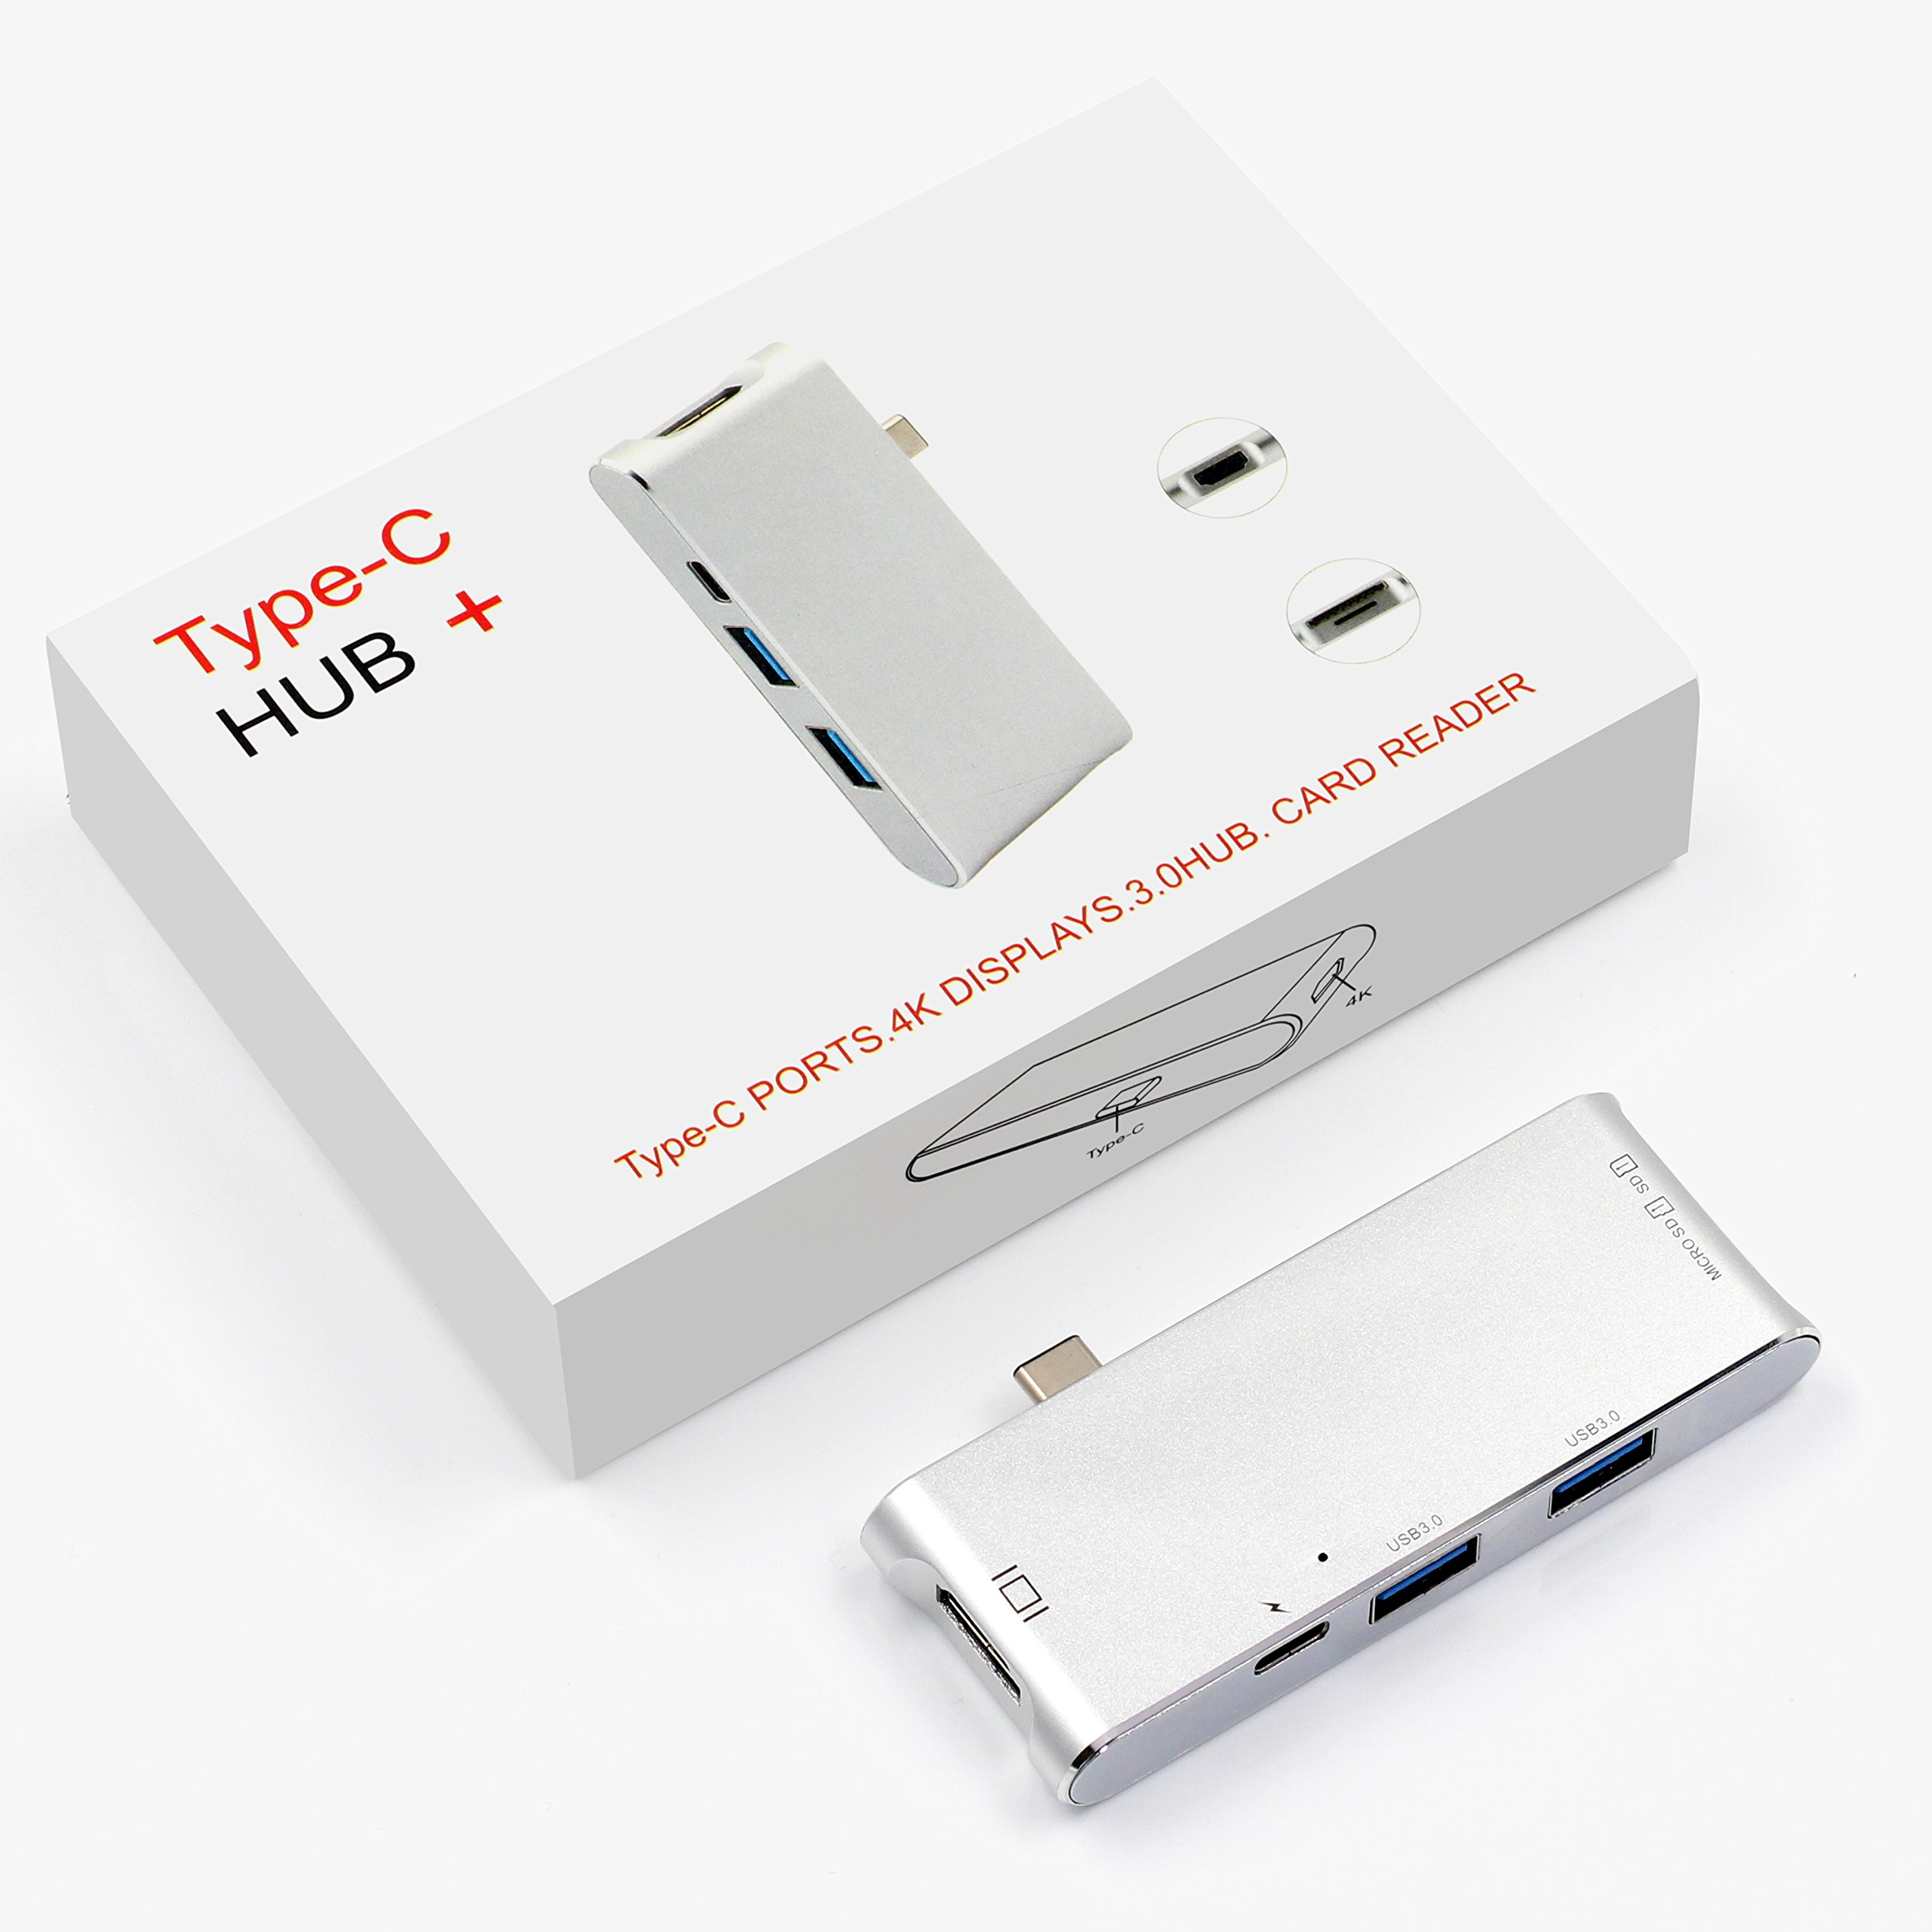 USB Type-C Hub, LUCKYDIY USB-C Adapter with HDMI 4K+2-Port USB 3.0+Power Delivery+Card Reader for MacBook Pro 2016/2017/Google Chromebook/More Type-C Devices by LUCKYDIY (Image #7)